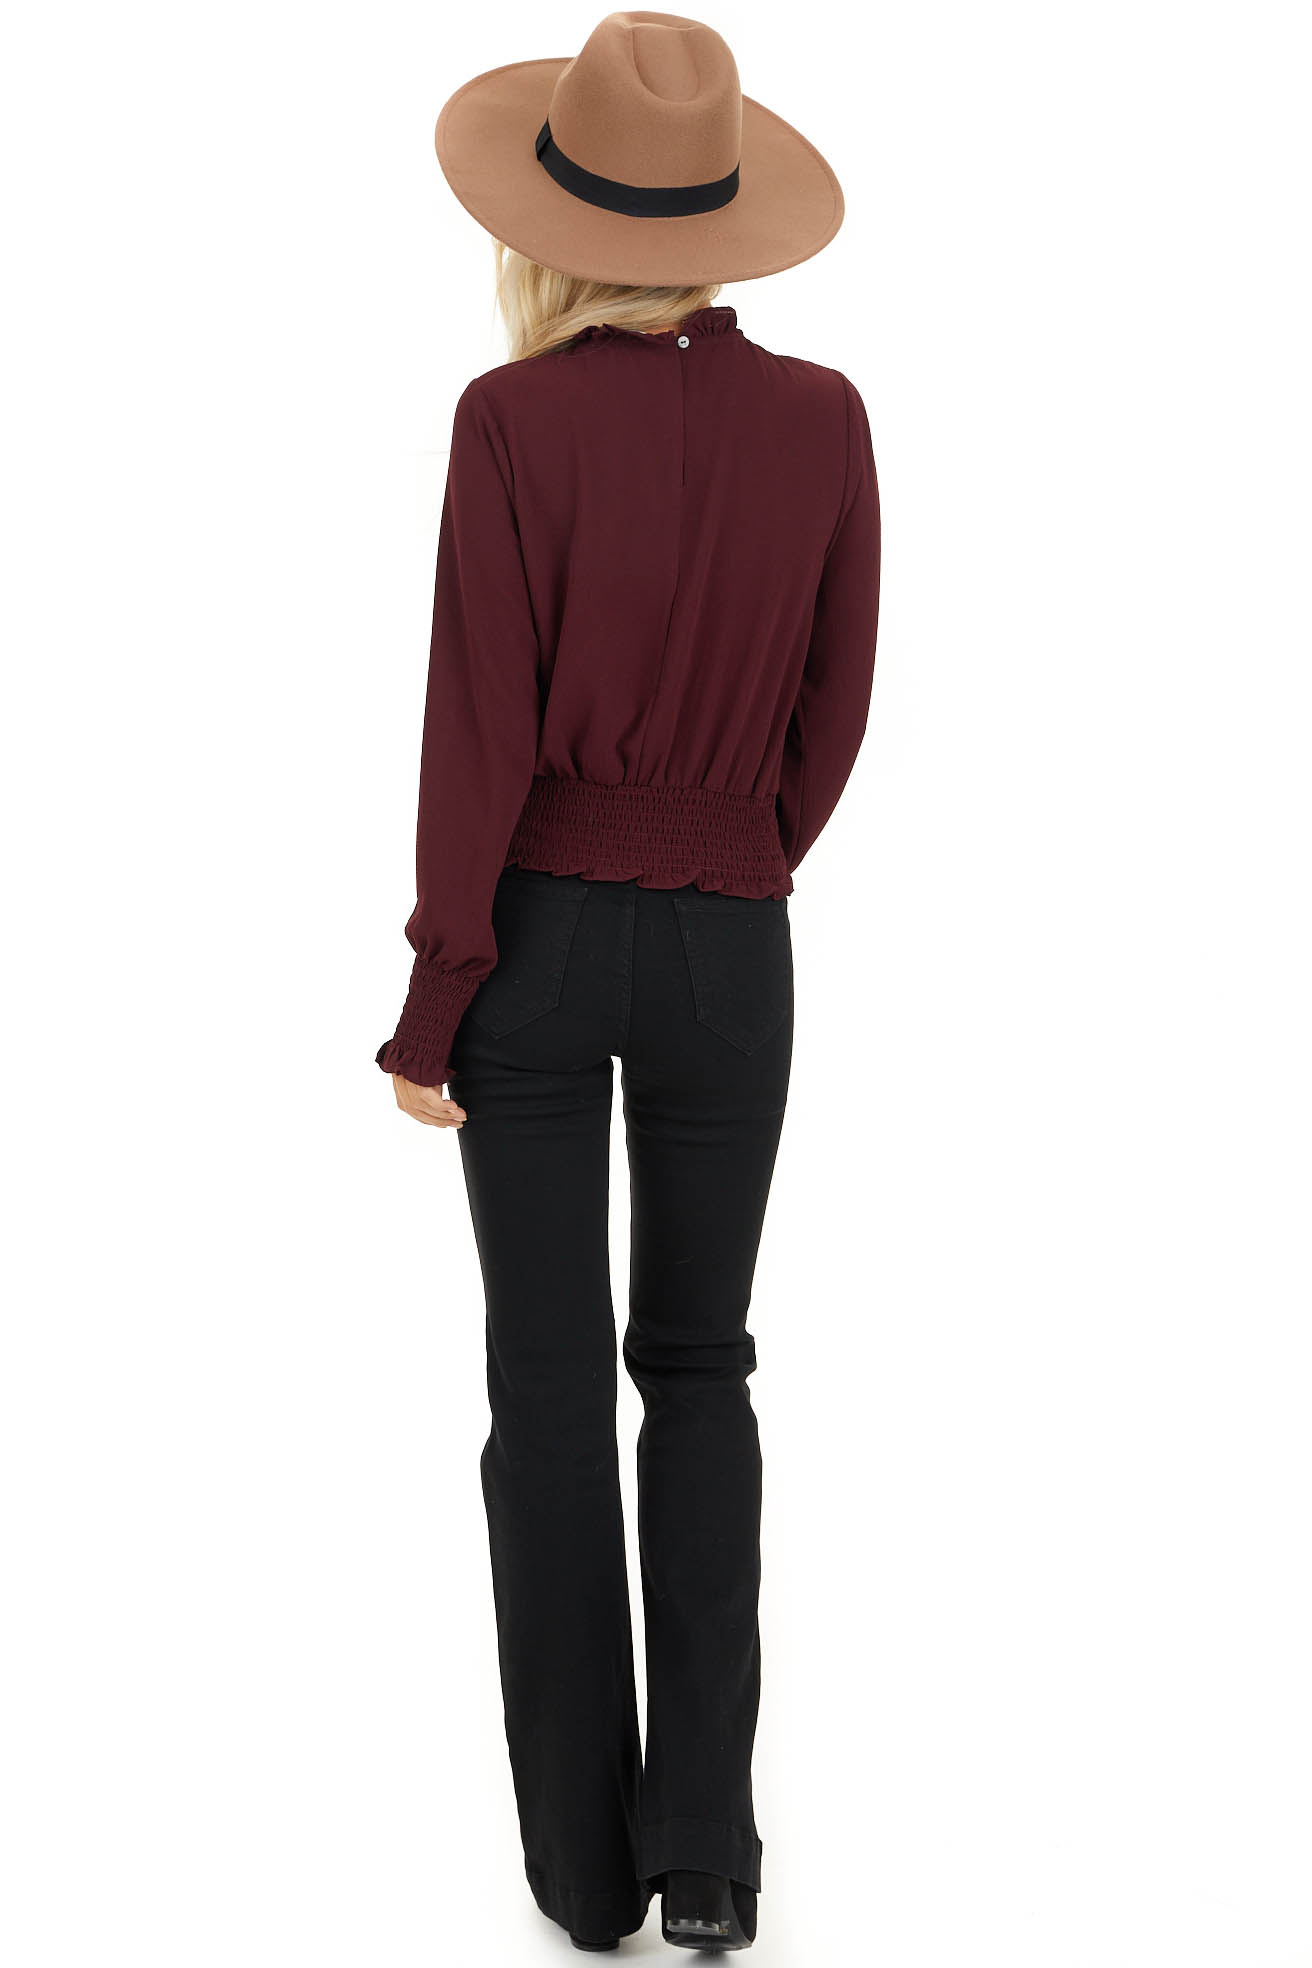 Burgundy High Neck Top with Smocked and Ruffle Details back full body